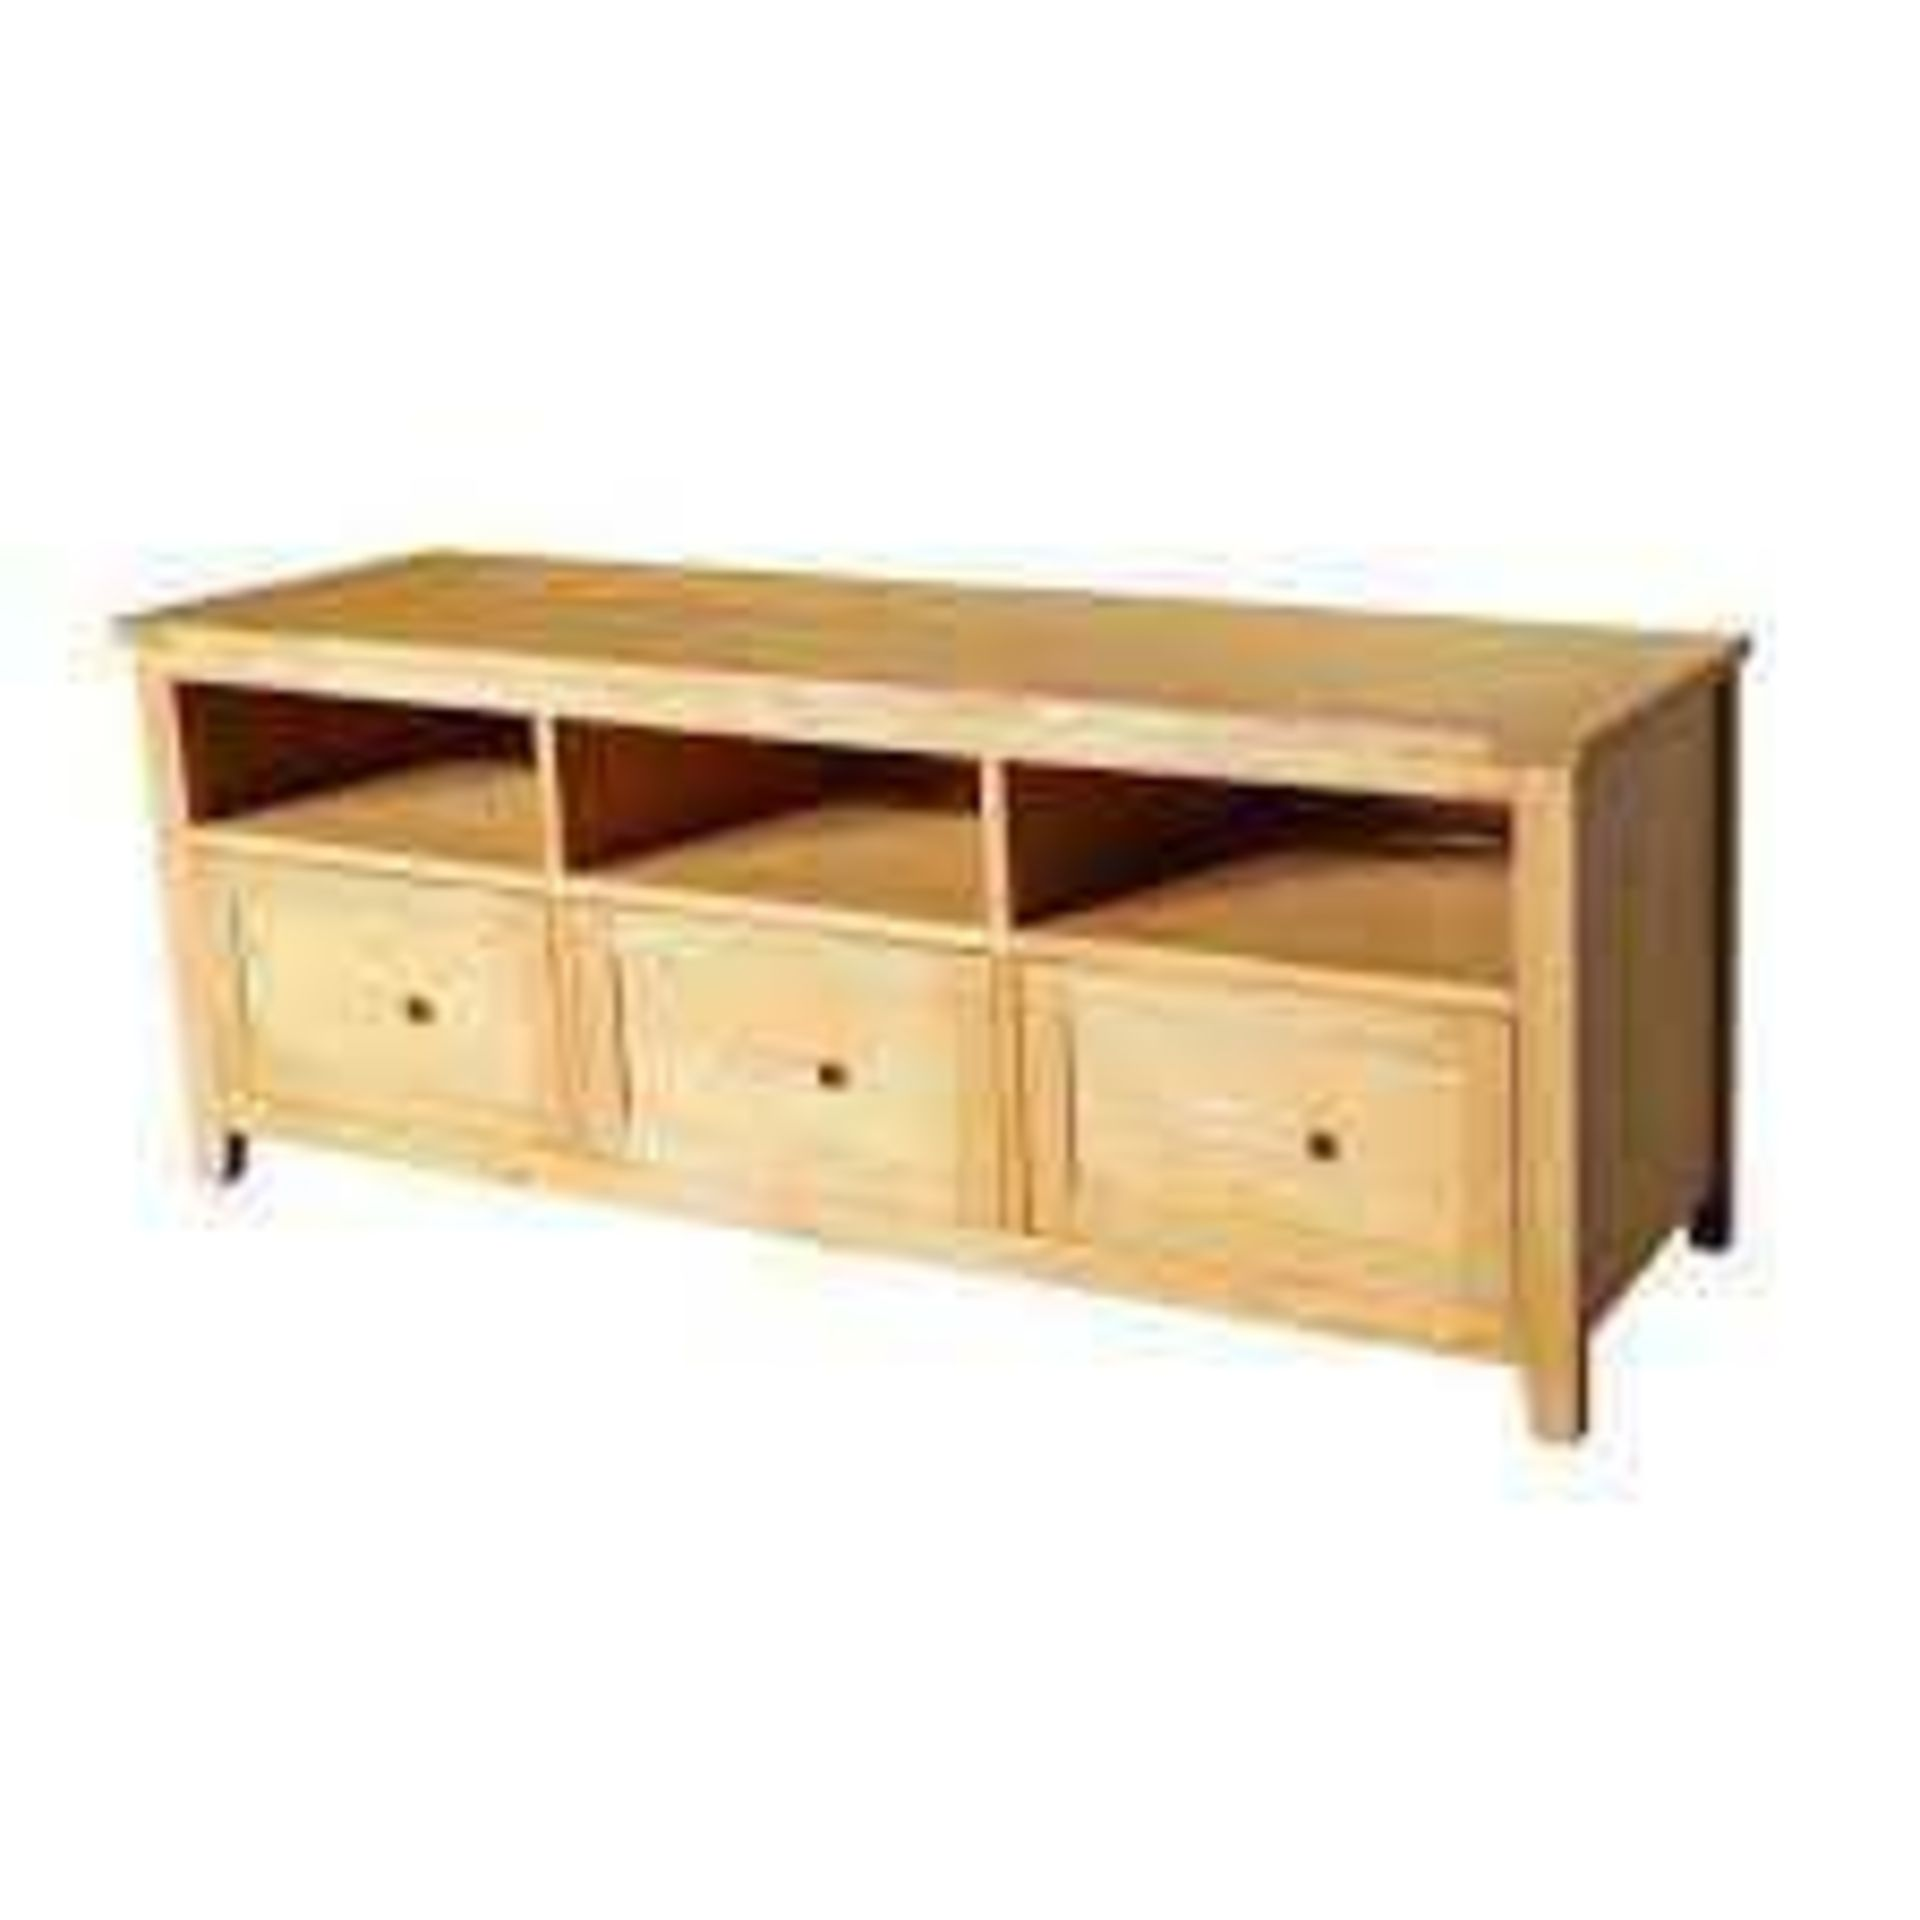 RRP £700 Boxed Brand New Fenton 3 Drawer Oak Tv Stand